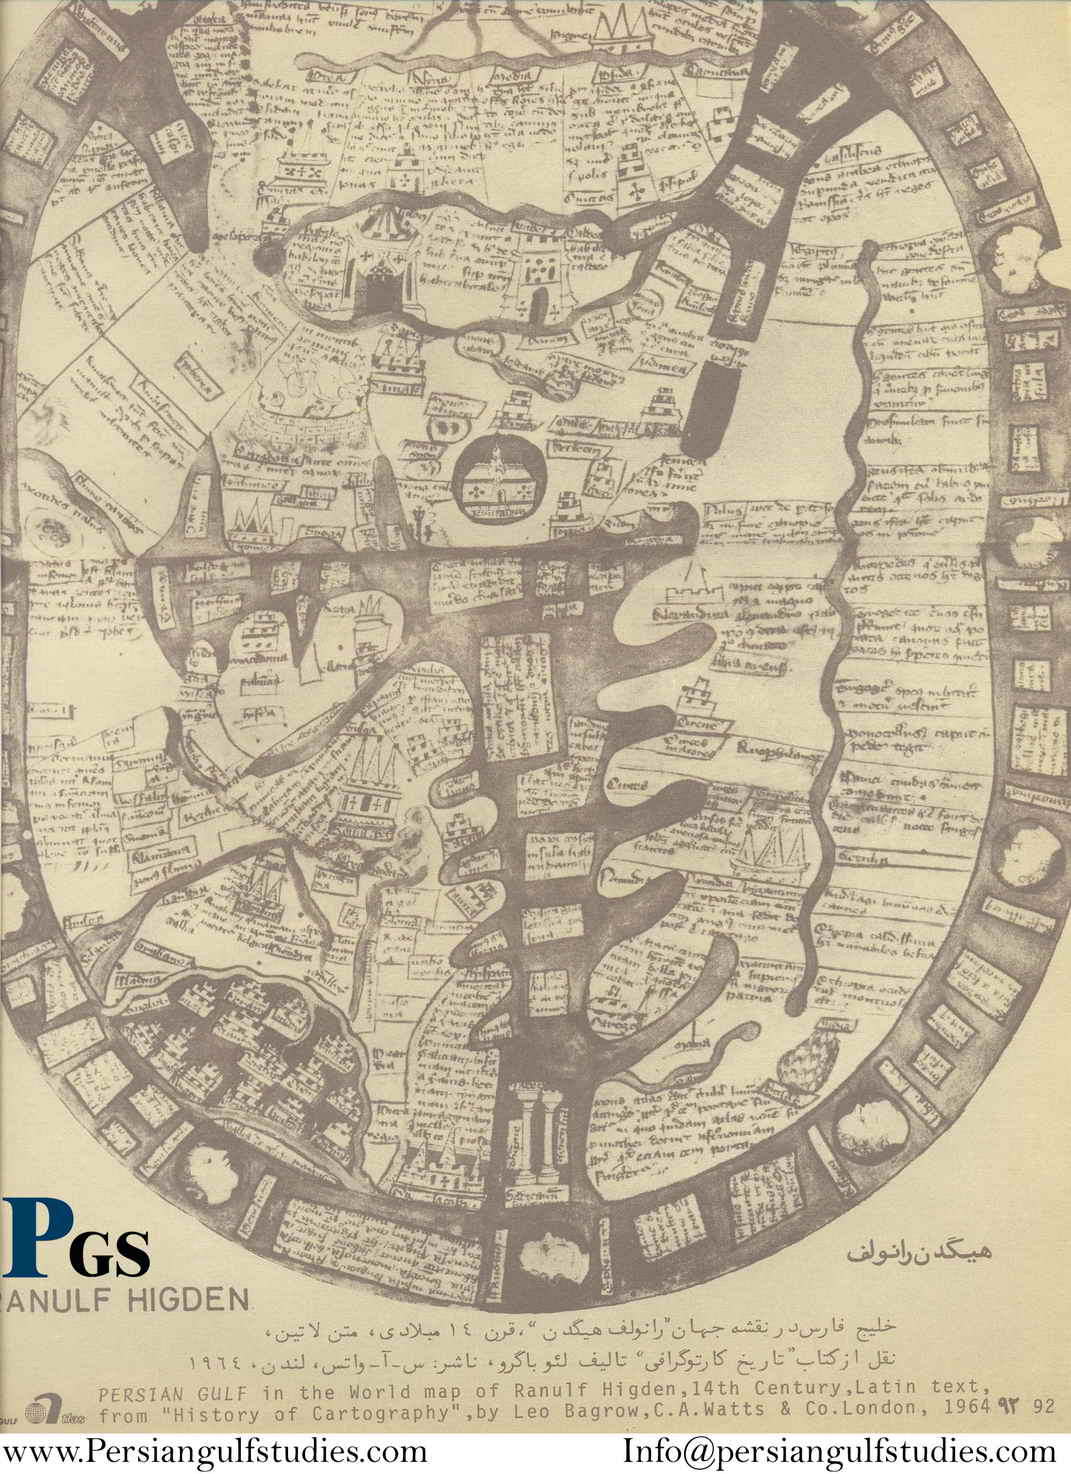 From 400 ad to 1470 adpersian gulf middle east map arabian gulf map persian gulf in the world map of ranulf higen ad latin text formlarouss histoire general des peuples voll paris 1925 original british museum gumiabroncs Image collections